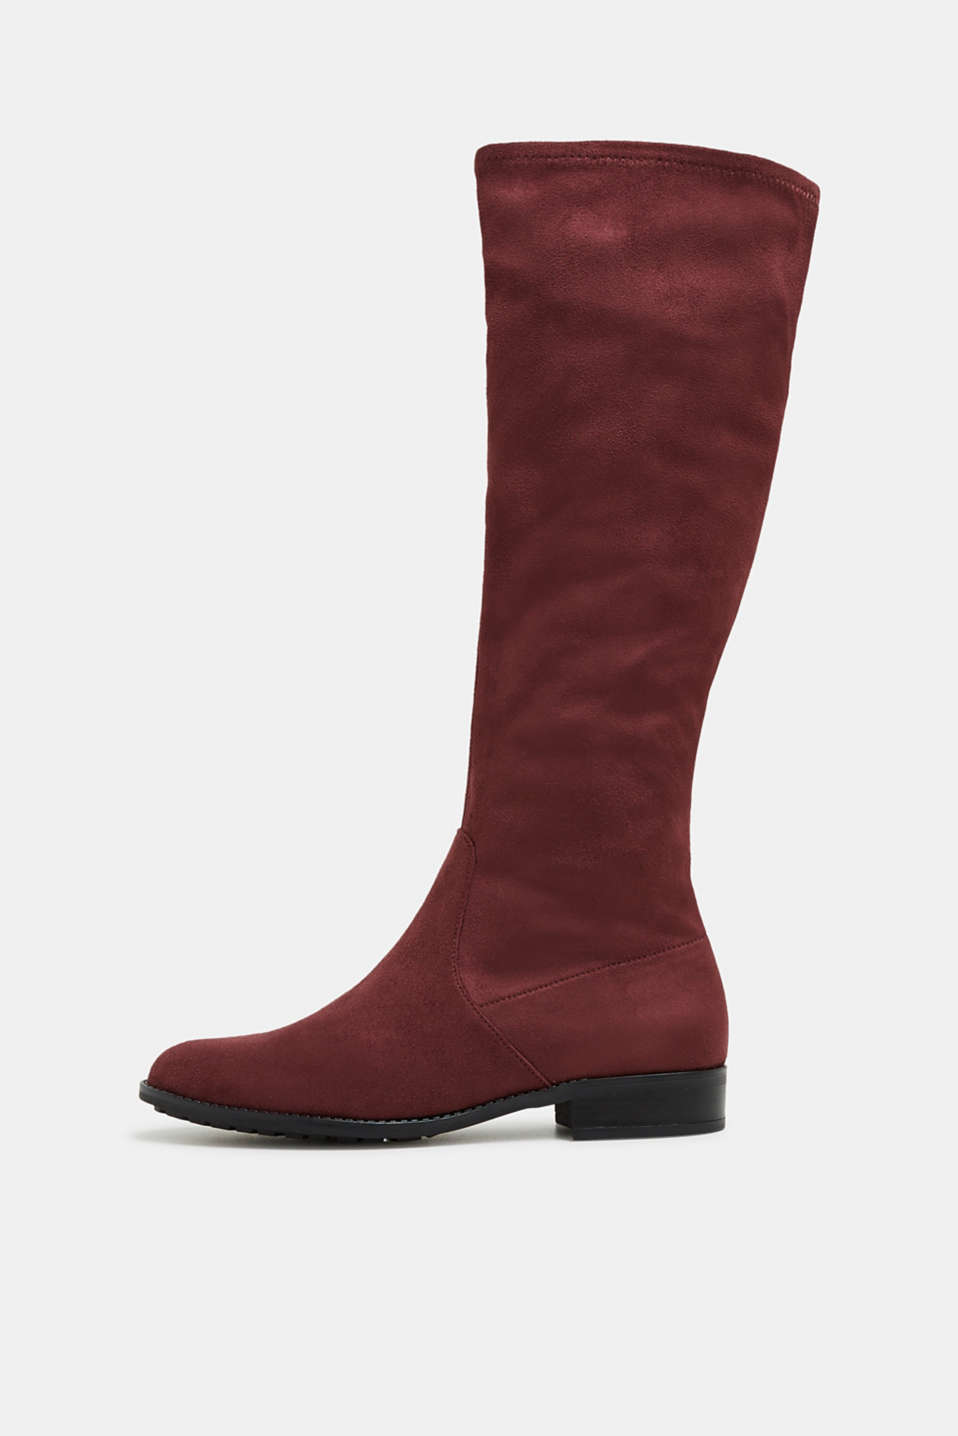 Esprit - Stretch boot in faux suede made of textile